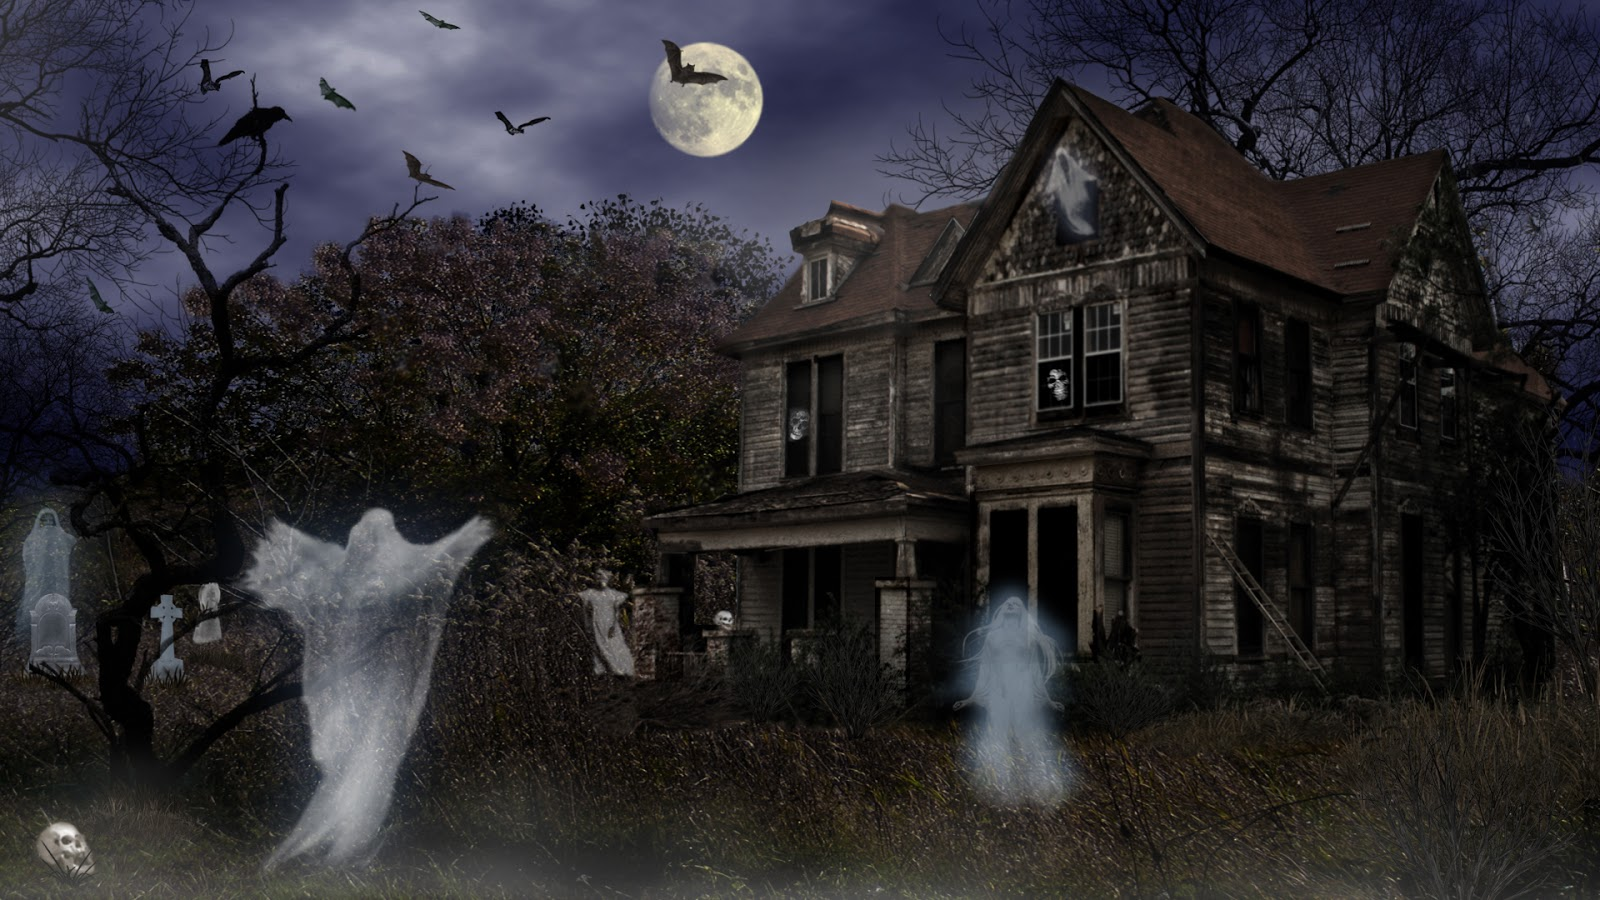 Halloween Haunted House Decoration Ideas 2017 And Images